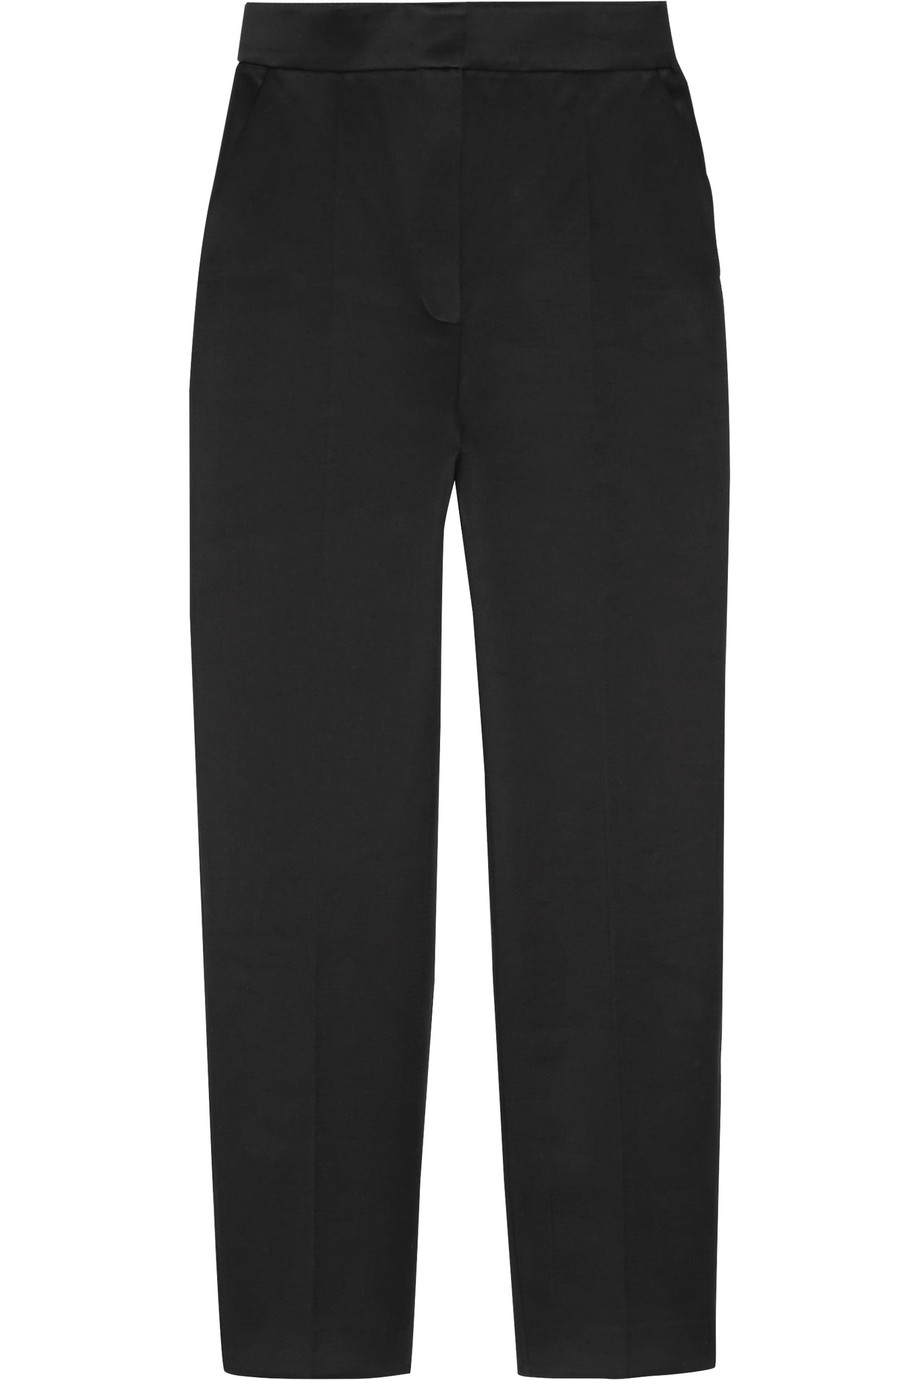 Vika Gazinskaya Cropped Cotton Tapered Pants, Black, Women's, Size: 44